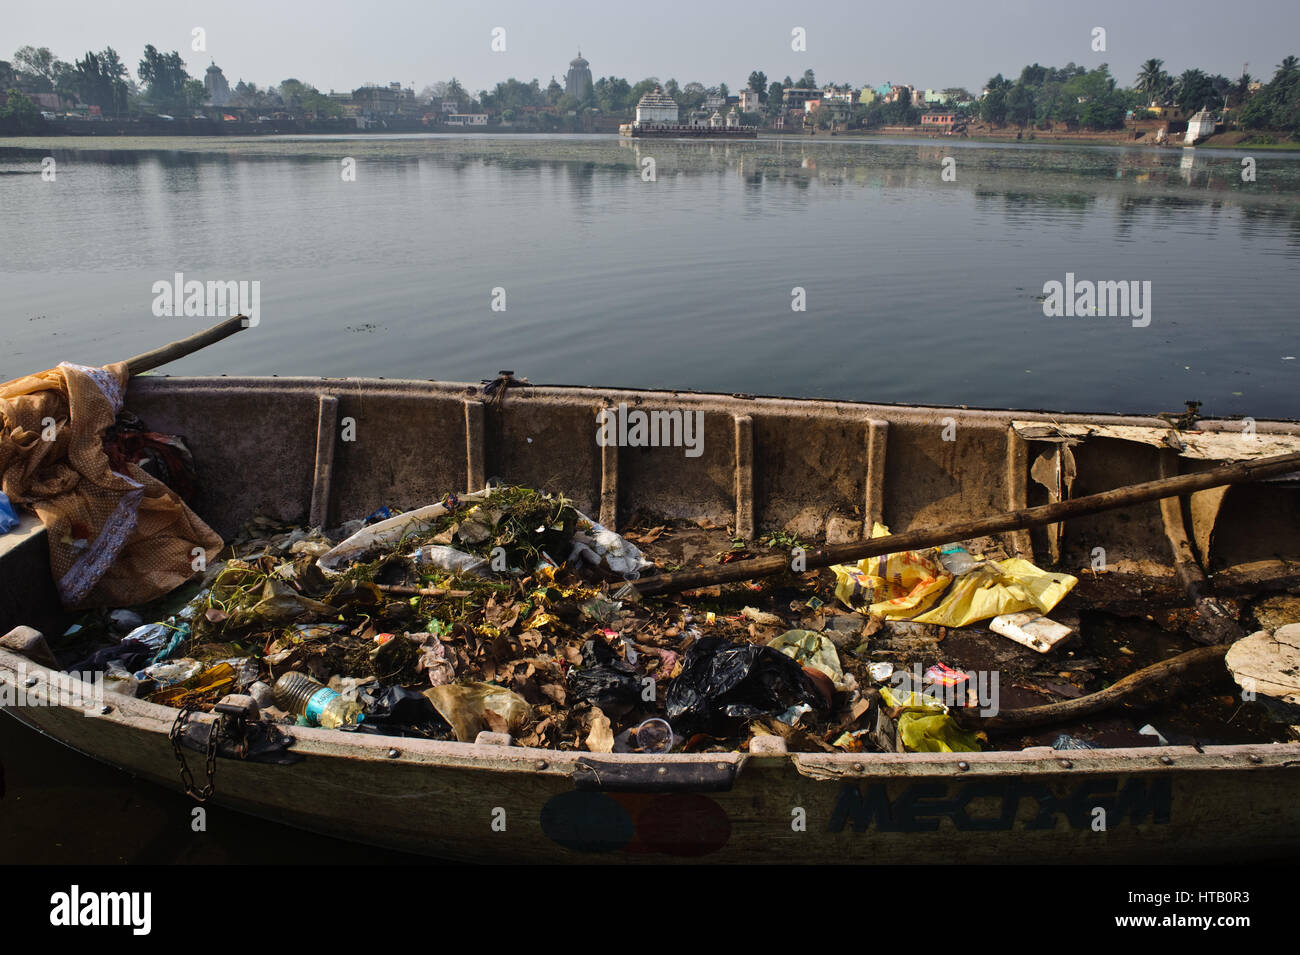 Cleaning up the lake 'bindu sagar' ( India). In the background, the Lingaraj temple is visible. - Stock Image